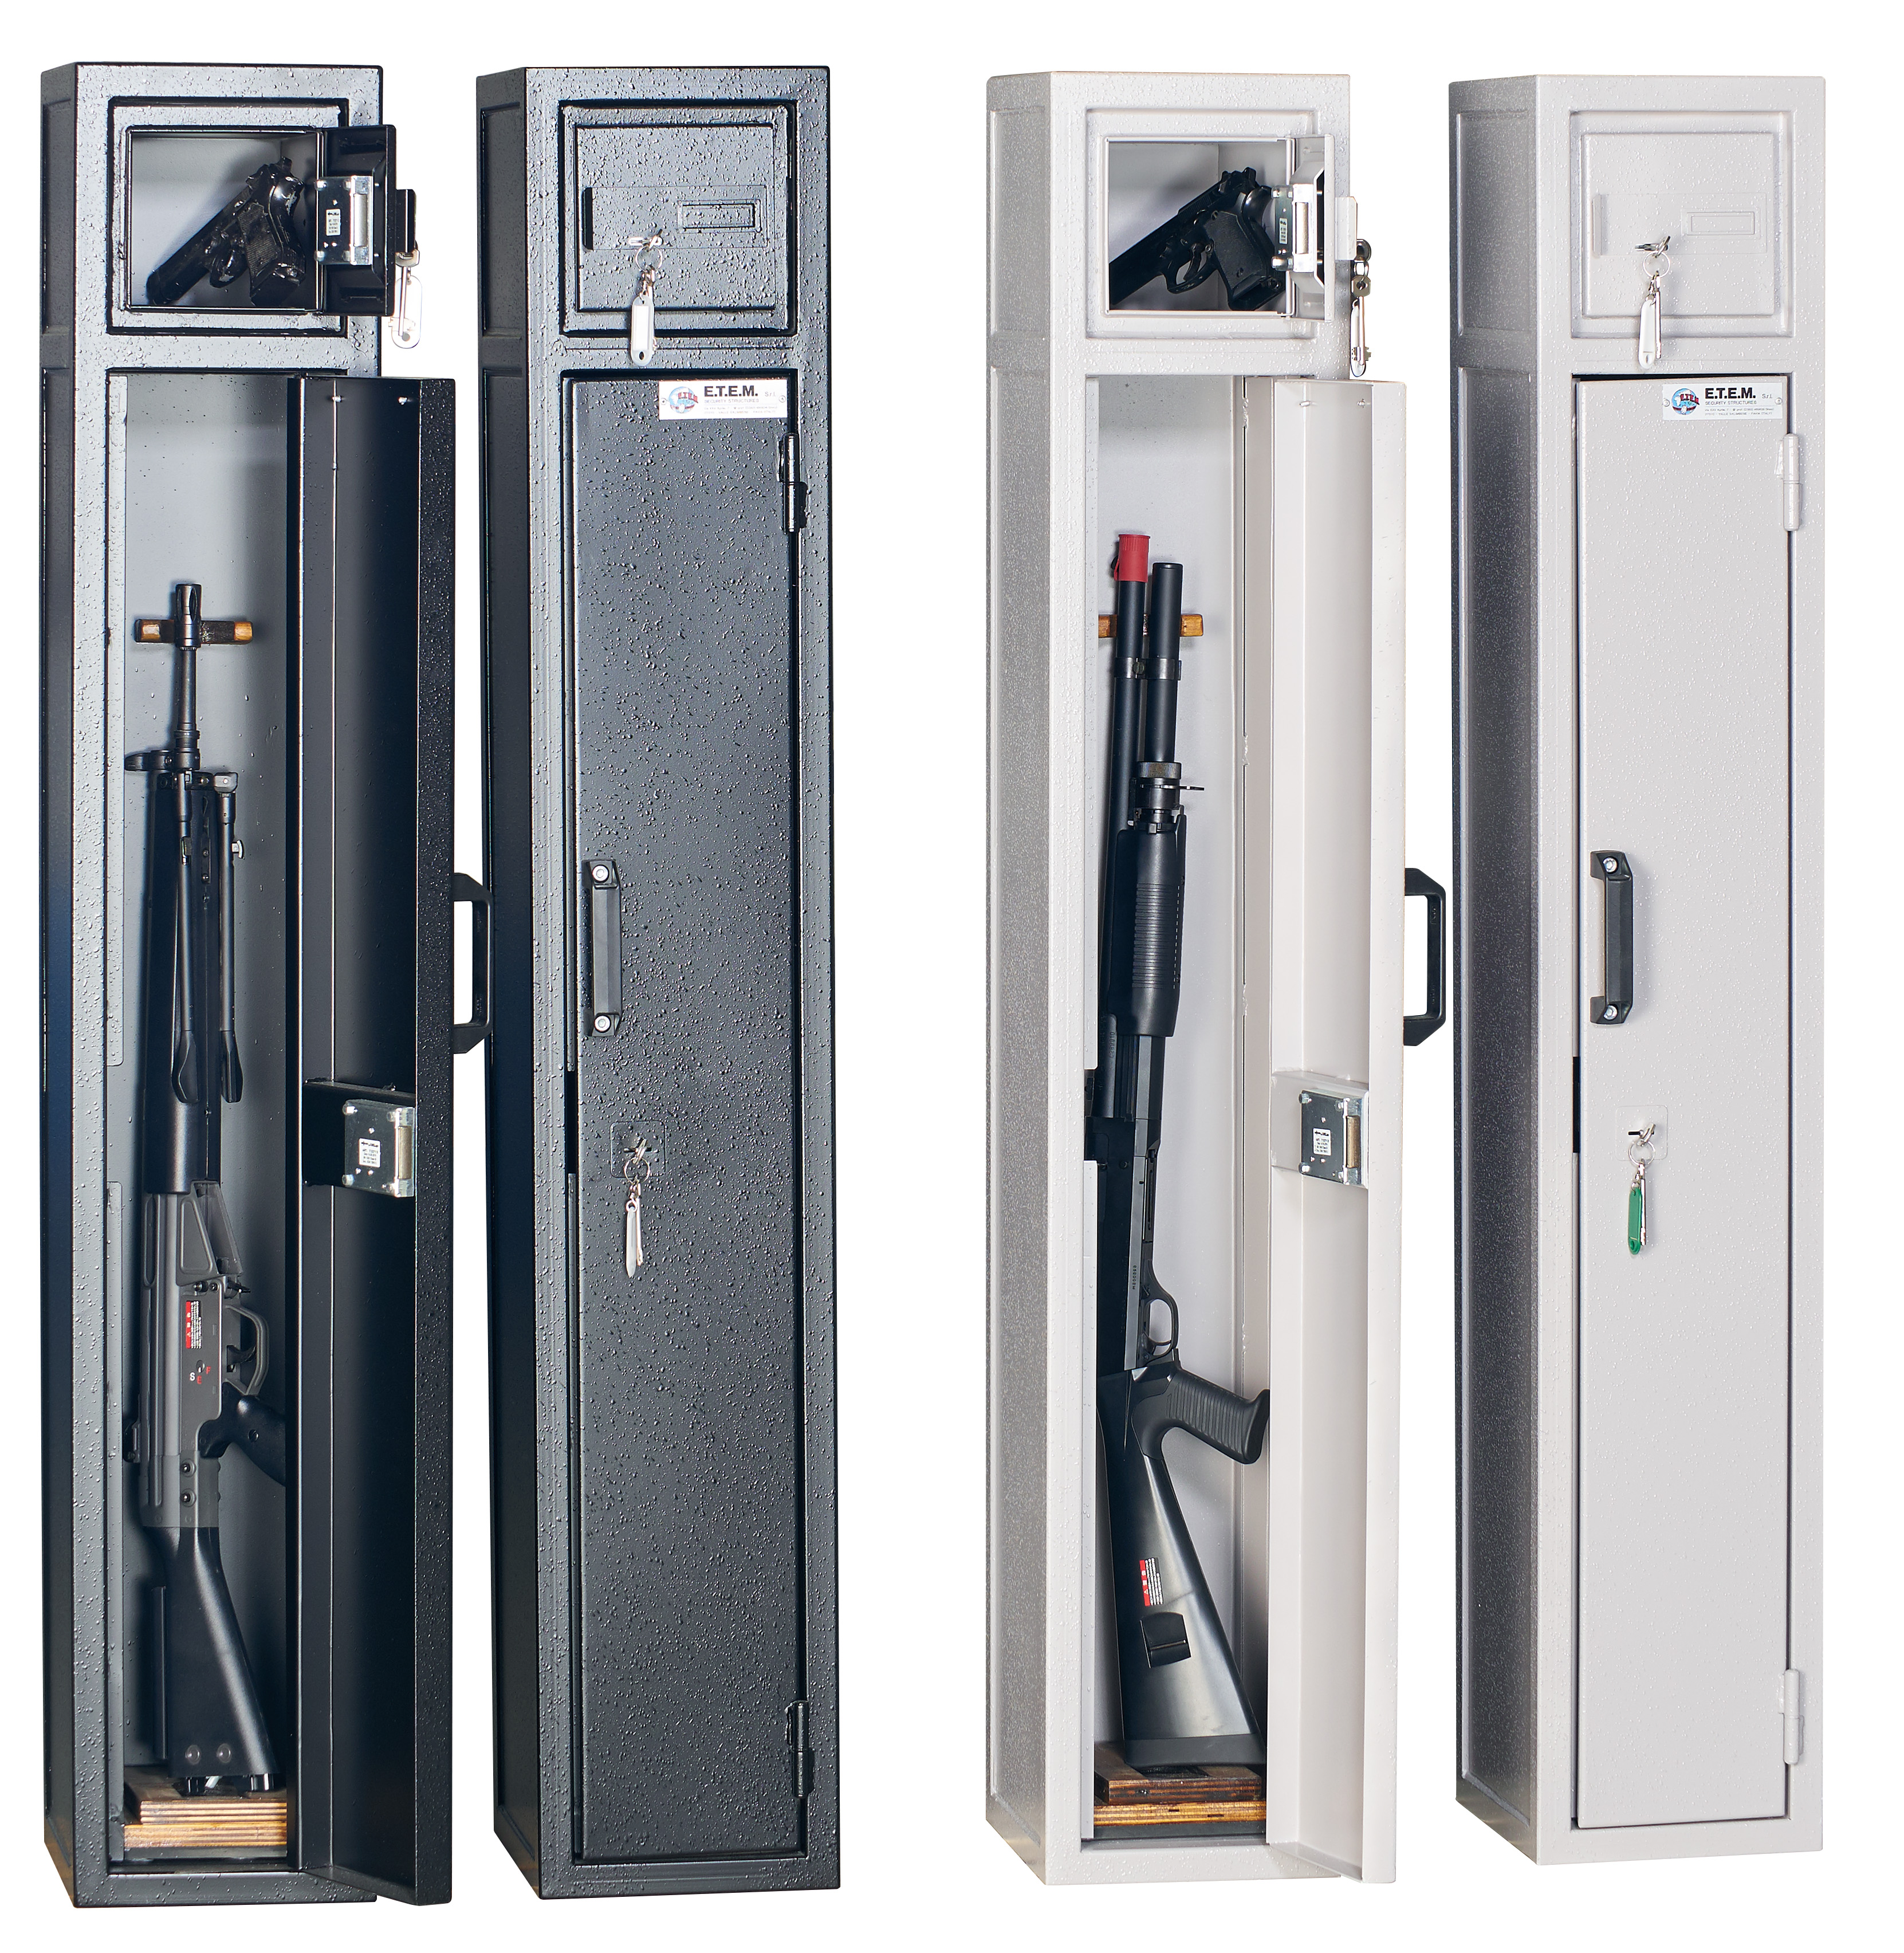 E T E M Etem Security Structures Locker Cabinets For